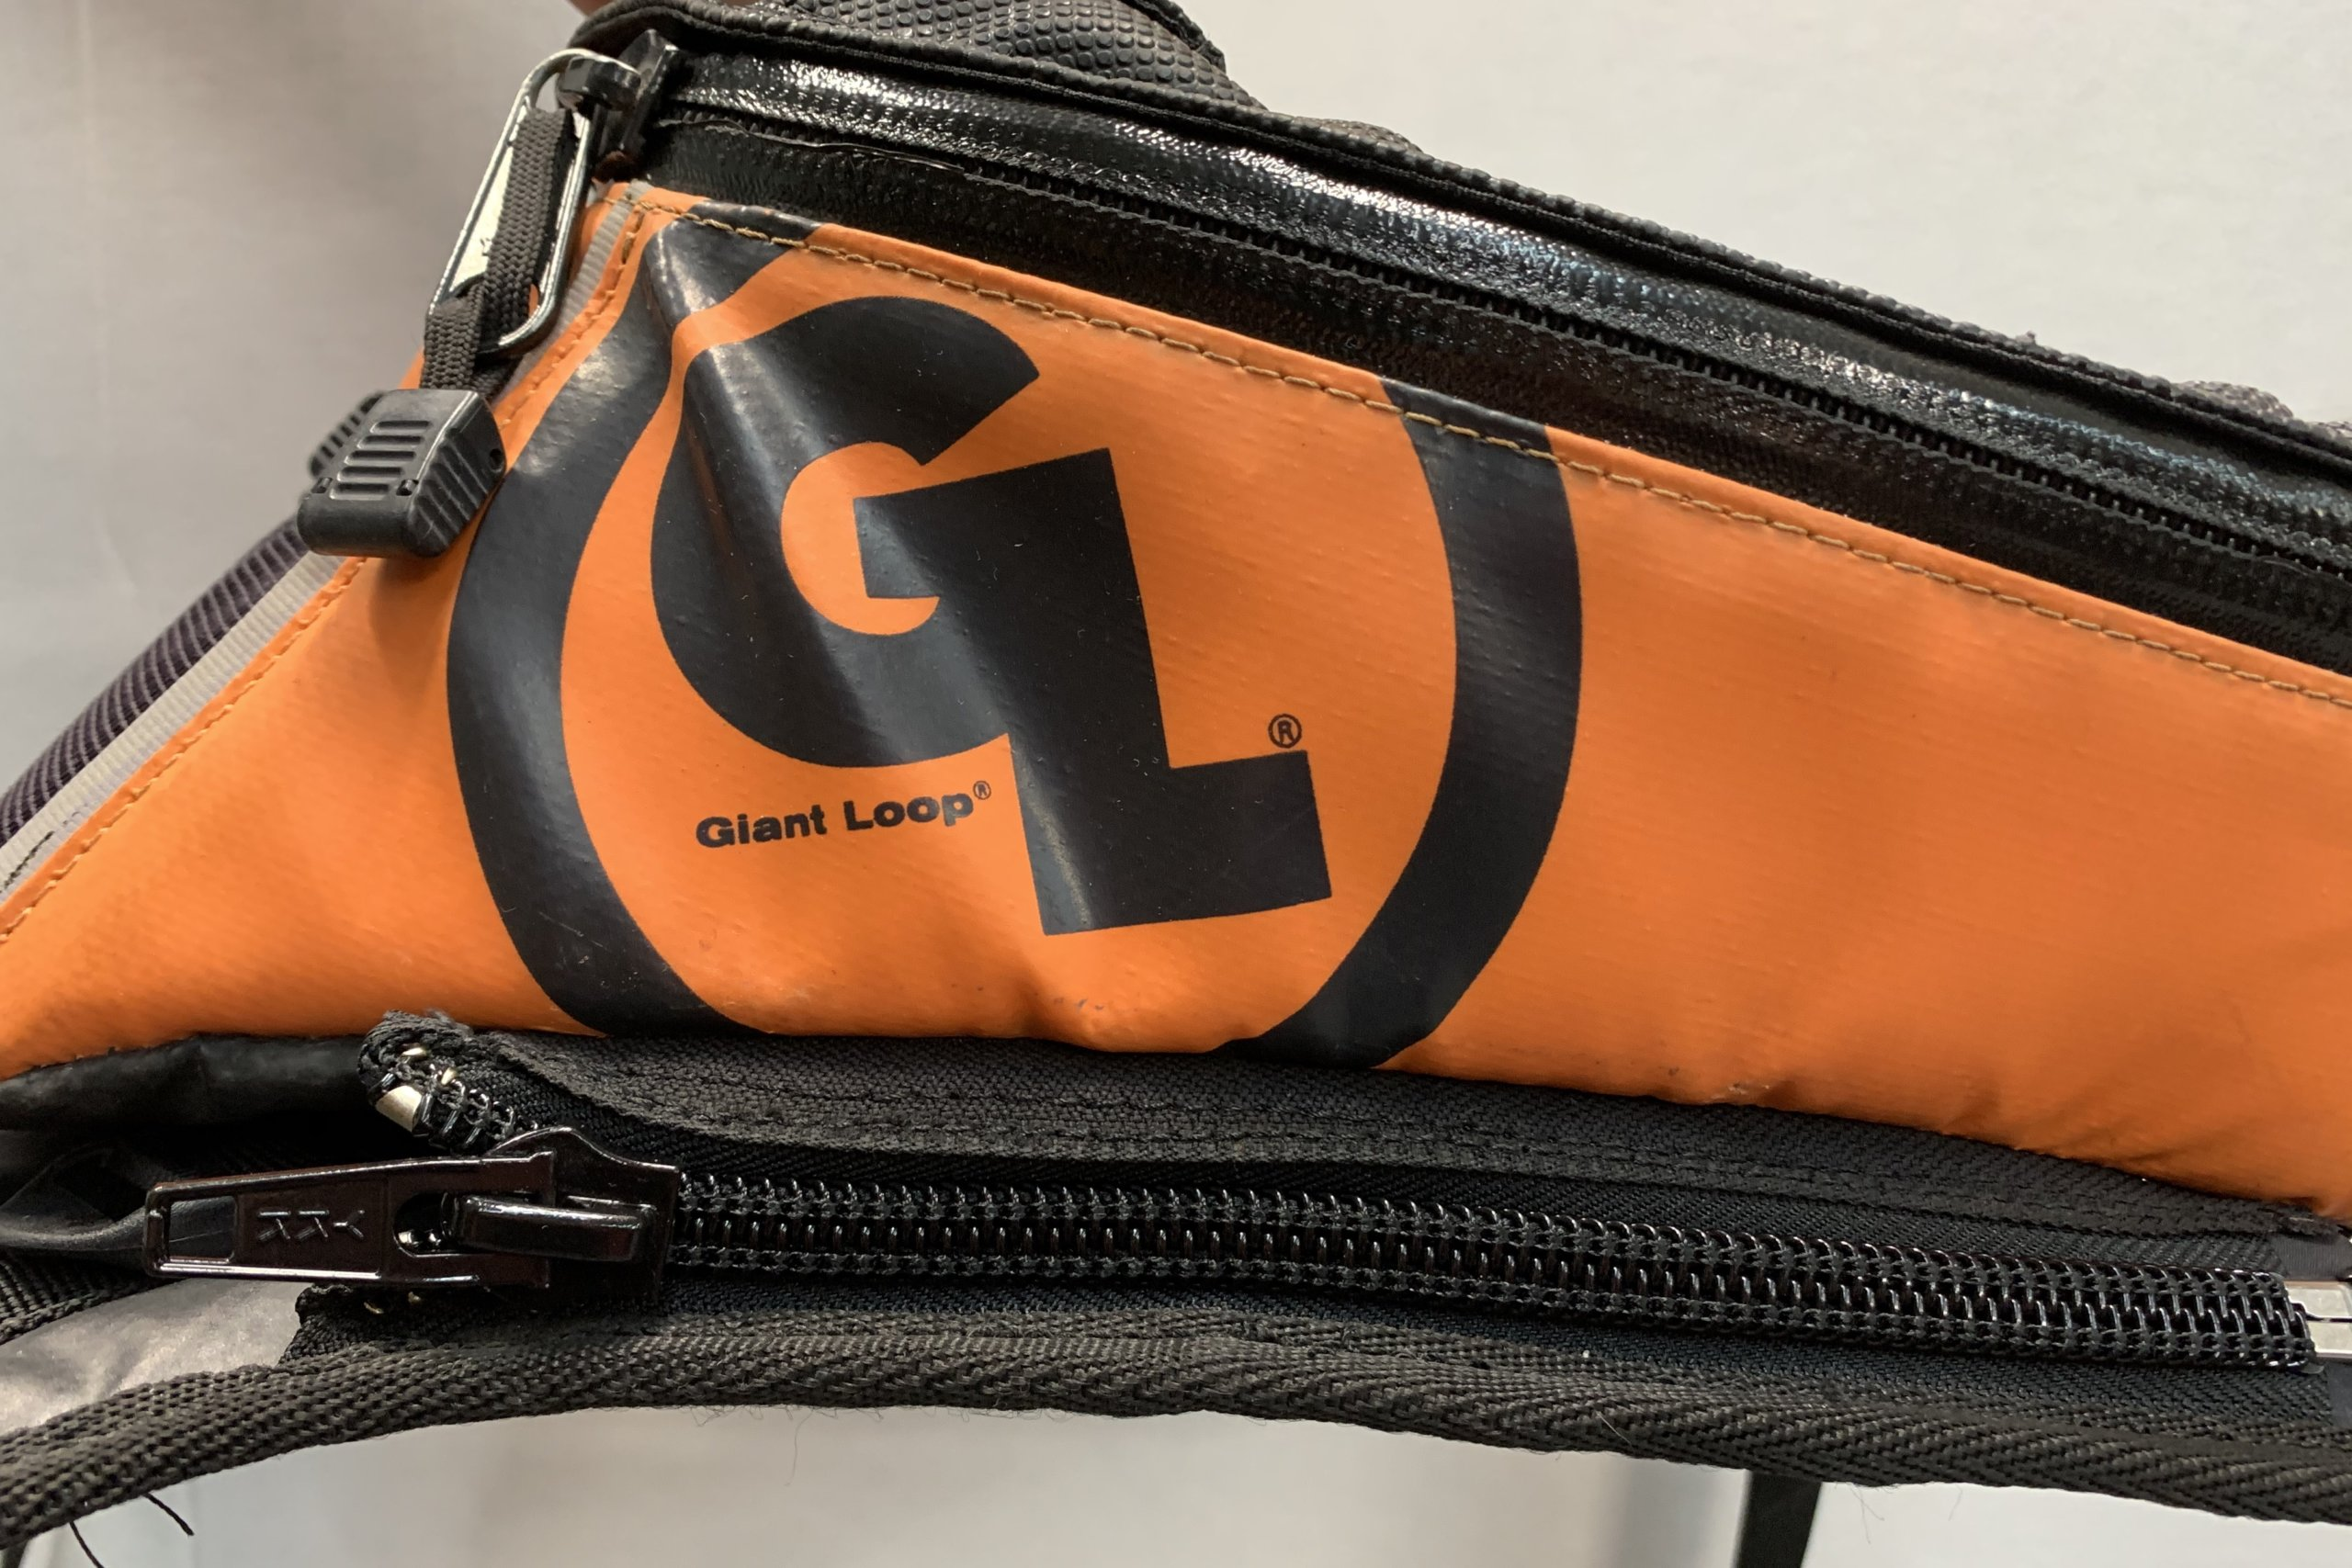 Giant Loop bag